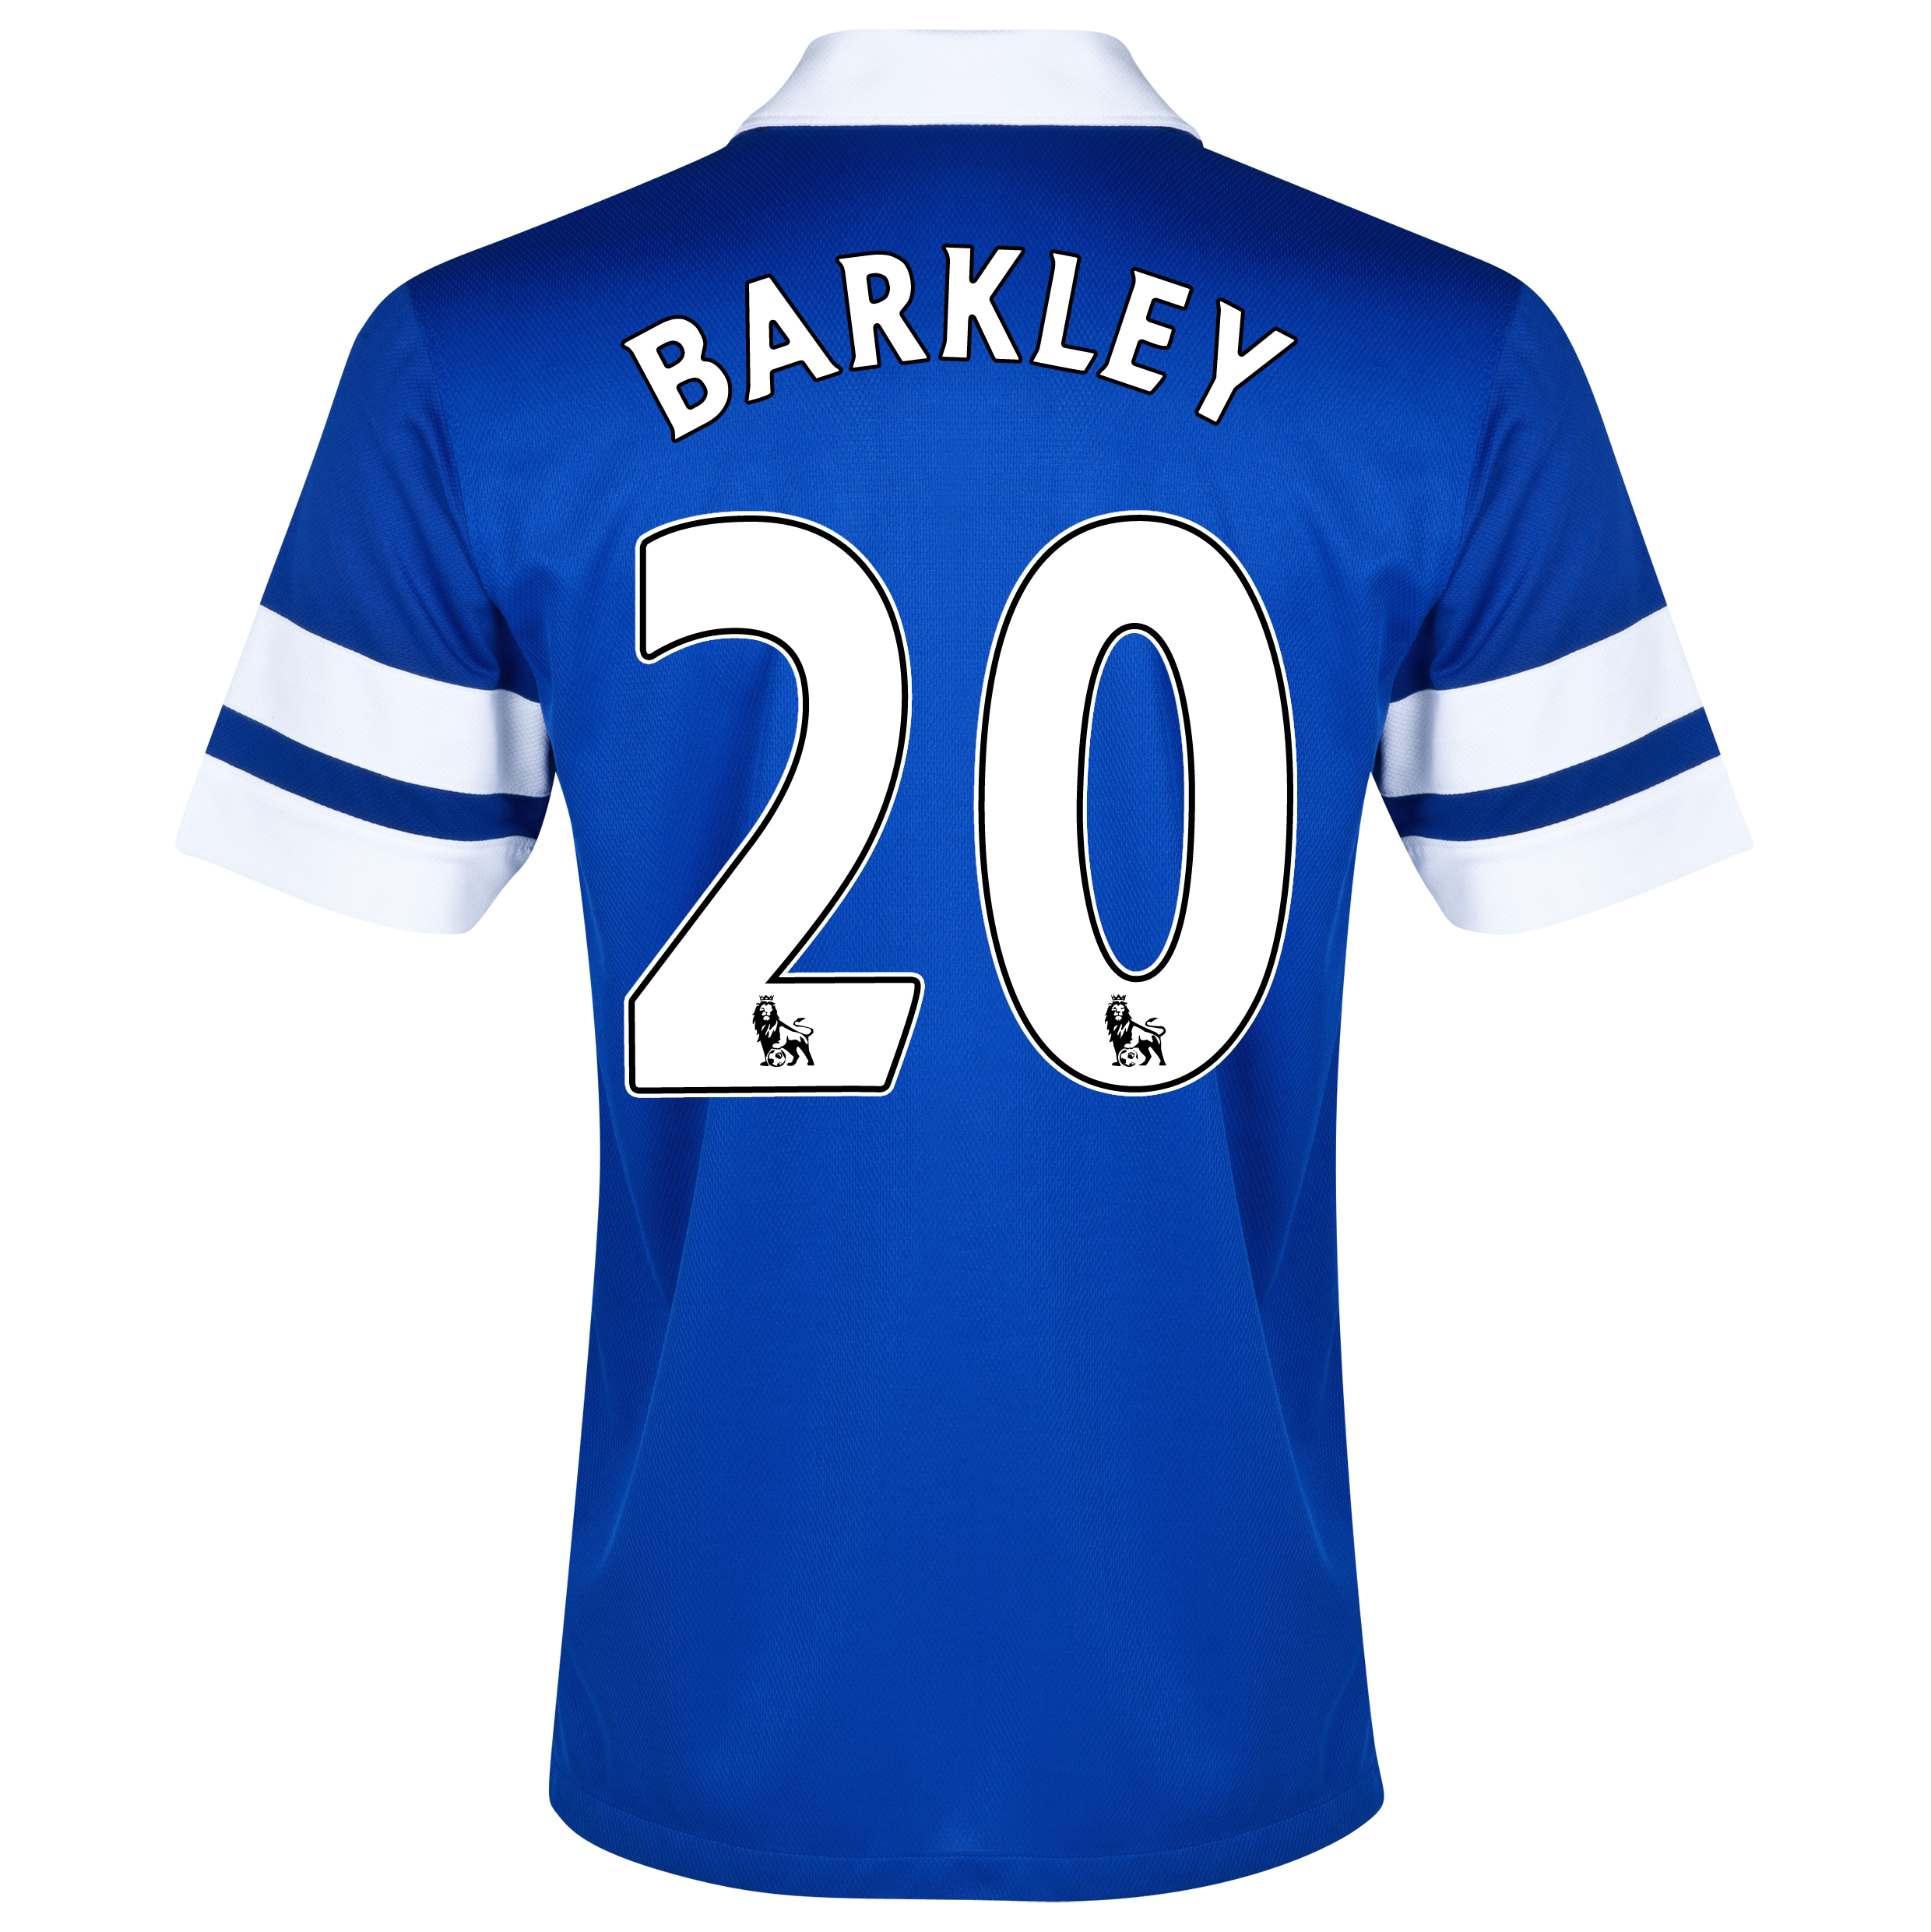 Everton Home Shirt 2013/14 Blue with Barkley 20 printing